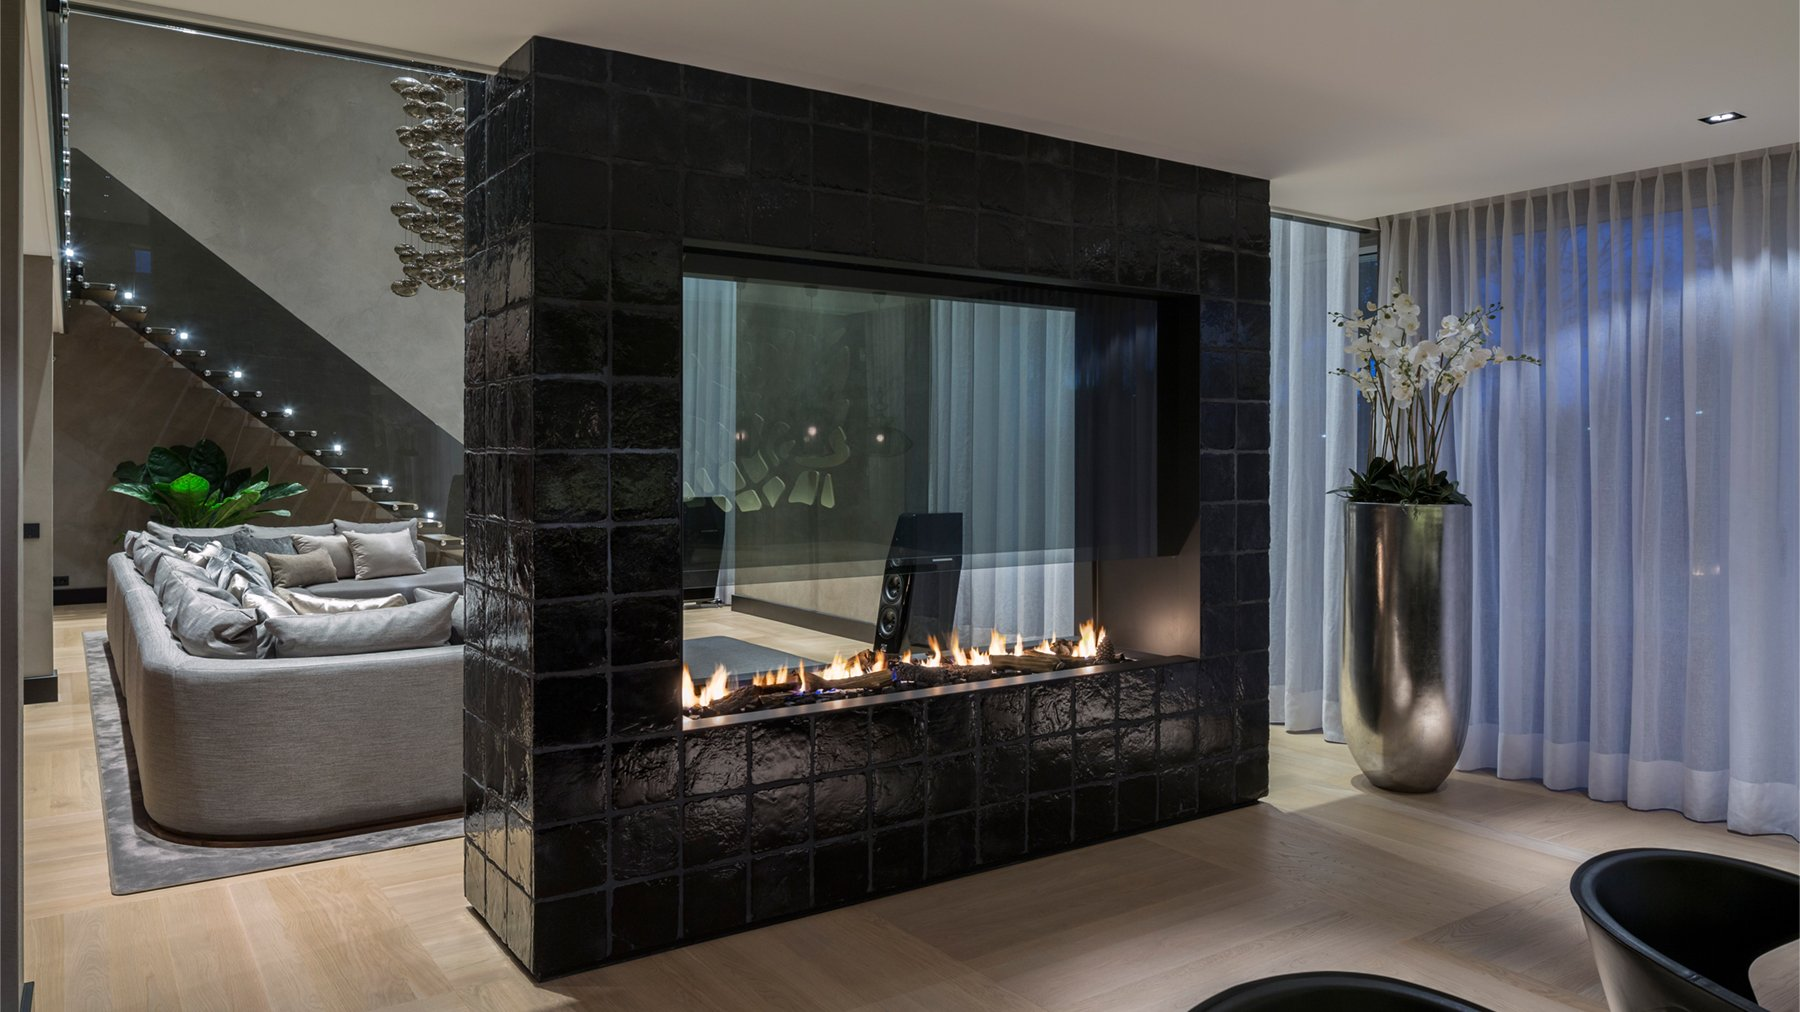 Contemporary fireplaces i designer fireplaces i luxury fireplaces - Luxurious interior design with modern glass and modular metallic theme ...